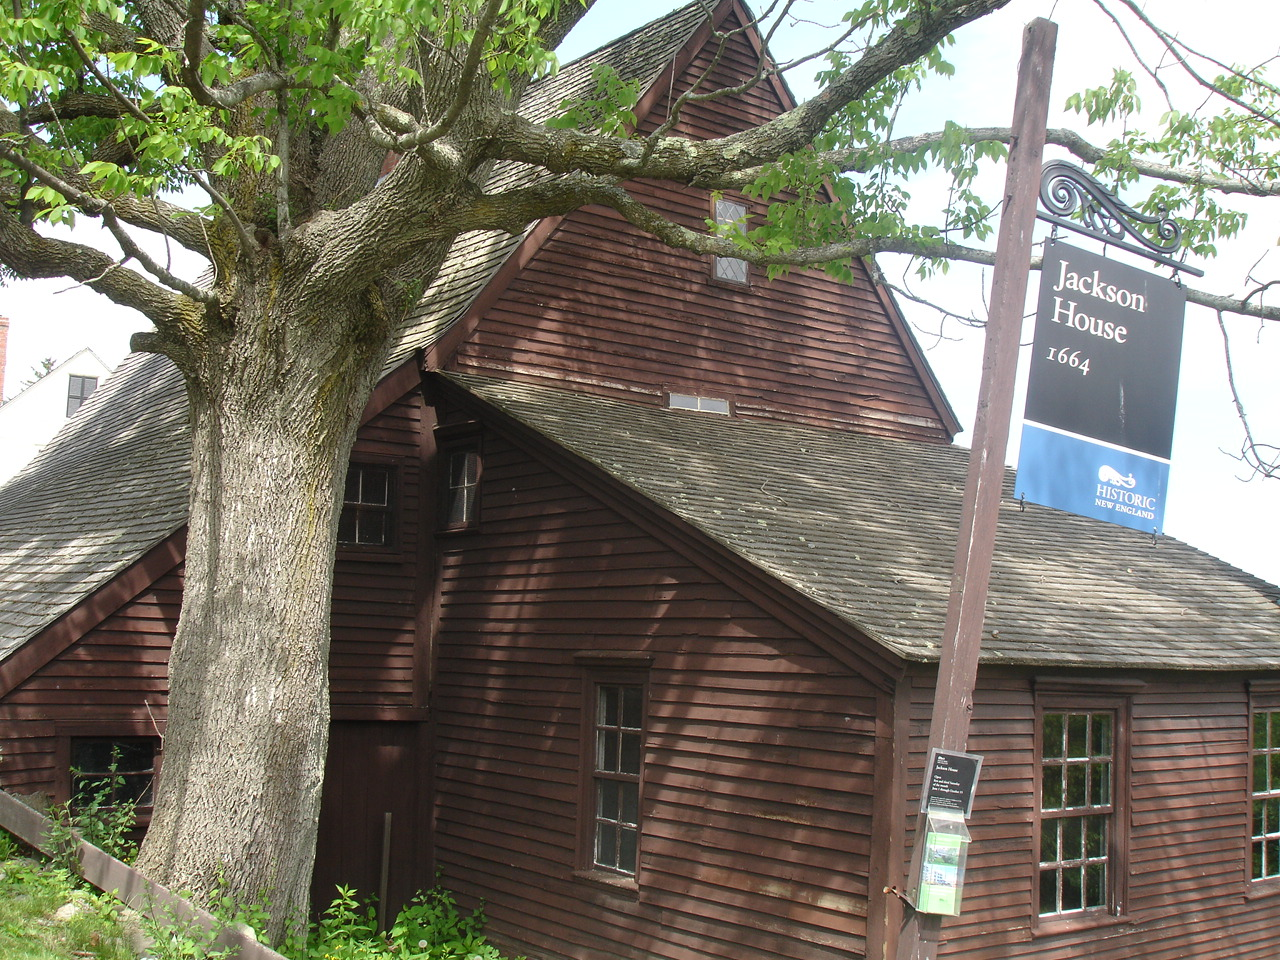 A National Historic Landmark, Jackson House is the oldest surviving wood-frame house in New Hampshire. It was built by Richard Jackson, a woodworker, farmer, and mariner